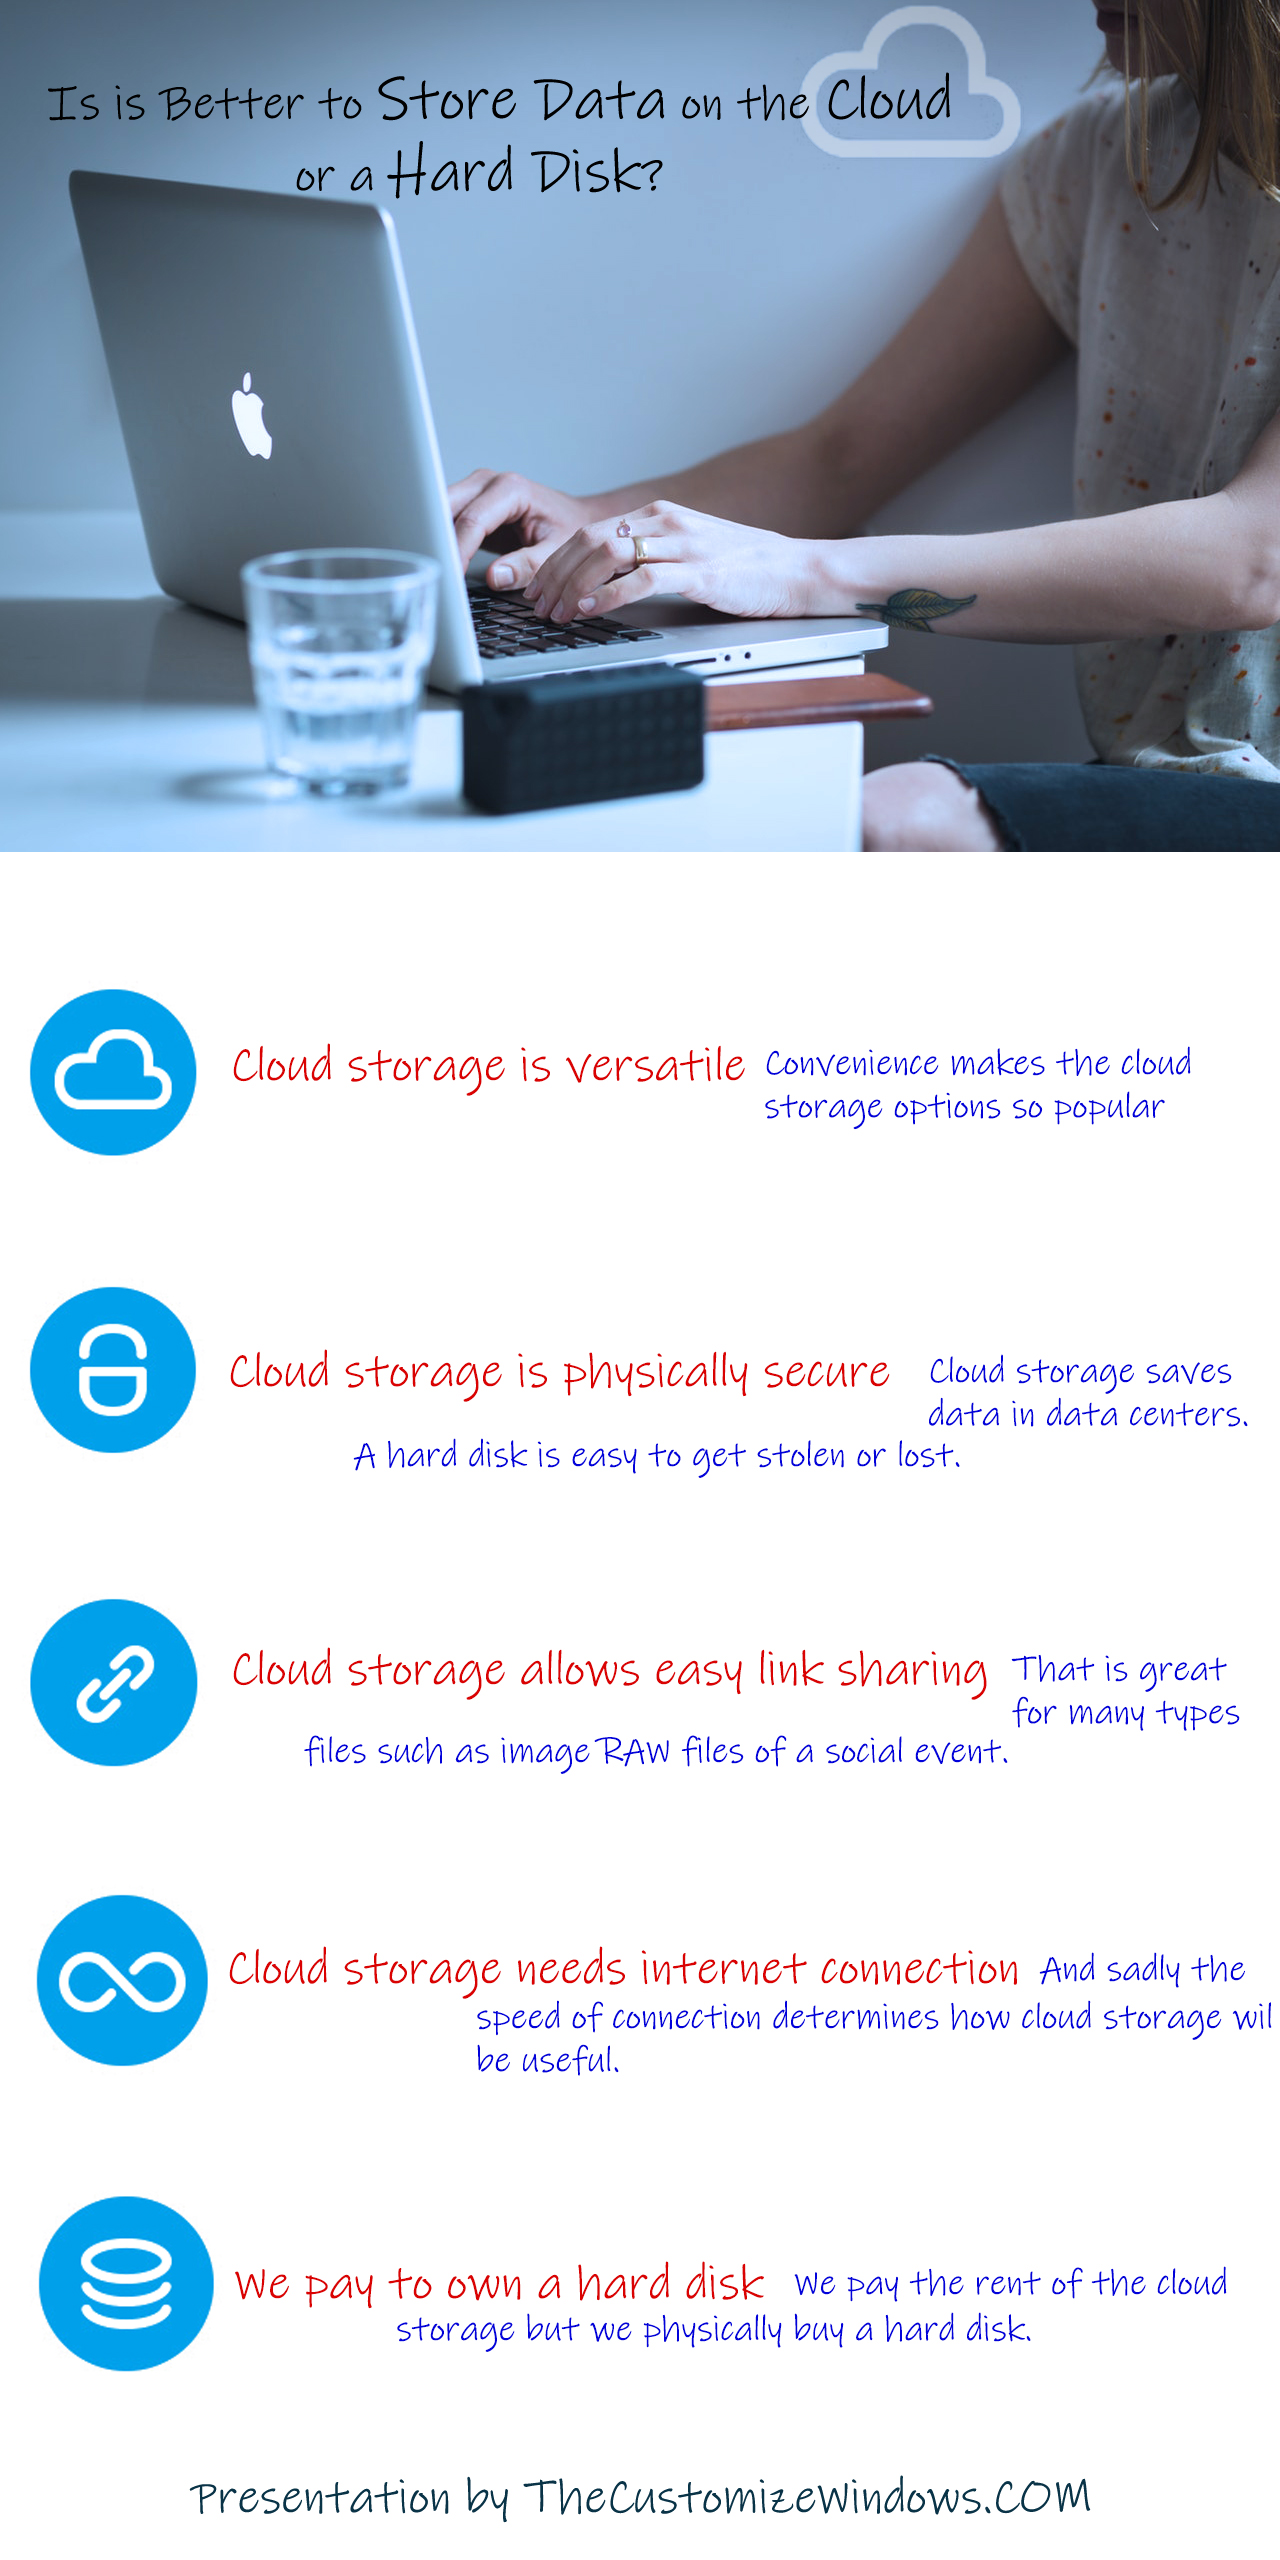 Is it Better to Store Data on the Cloud or on a Hard Drive